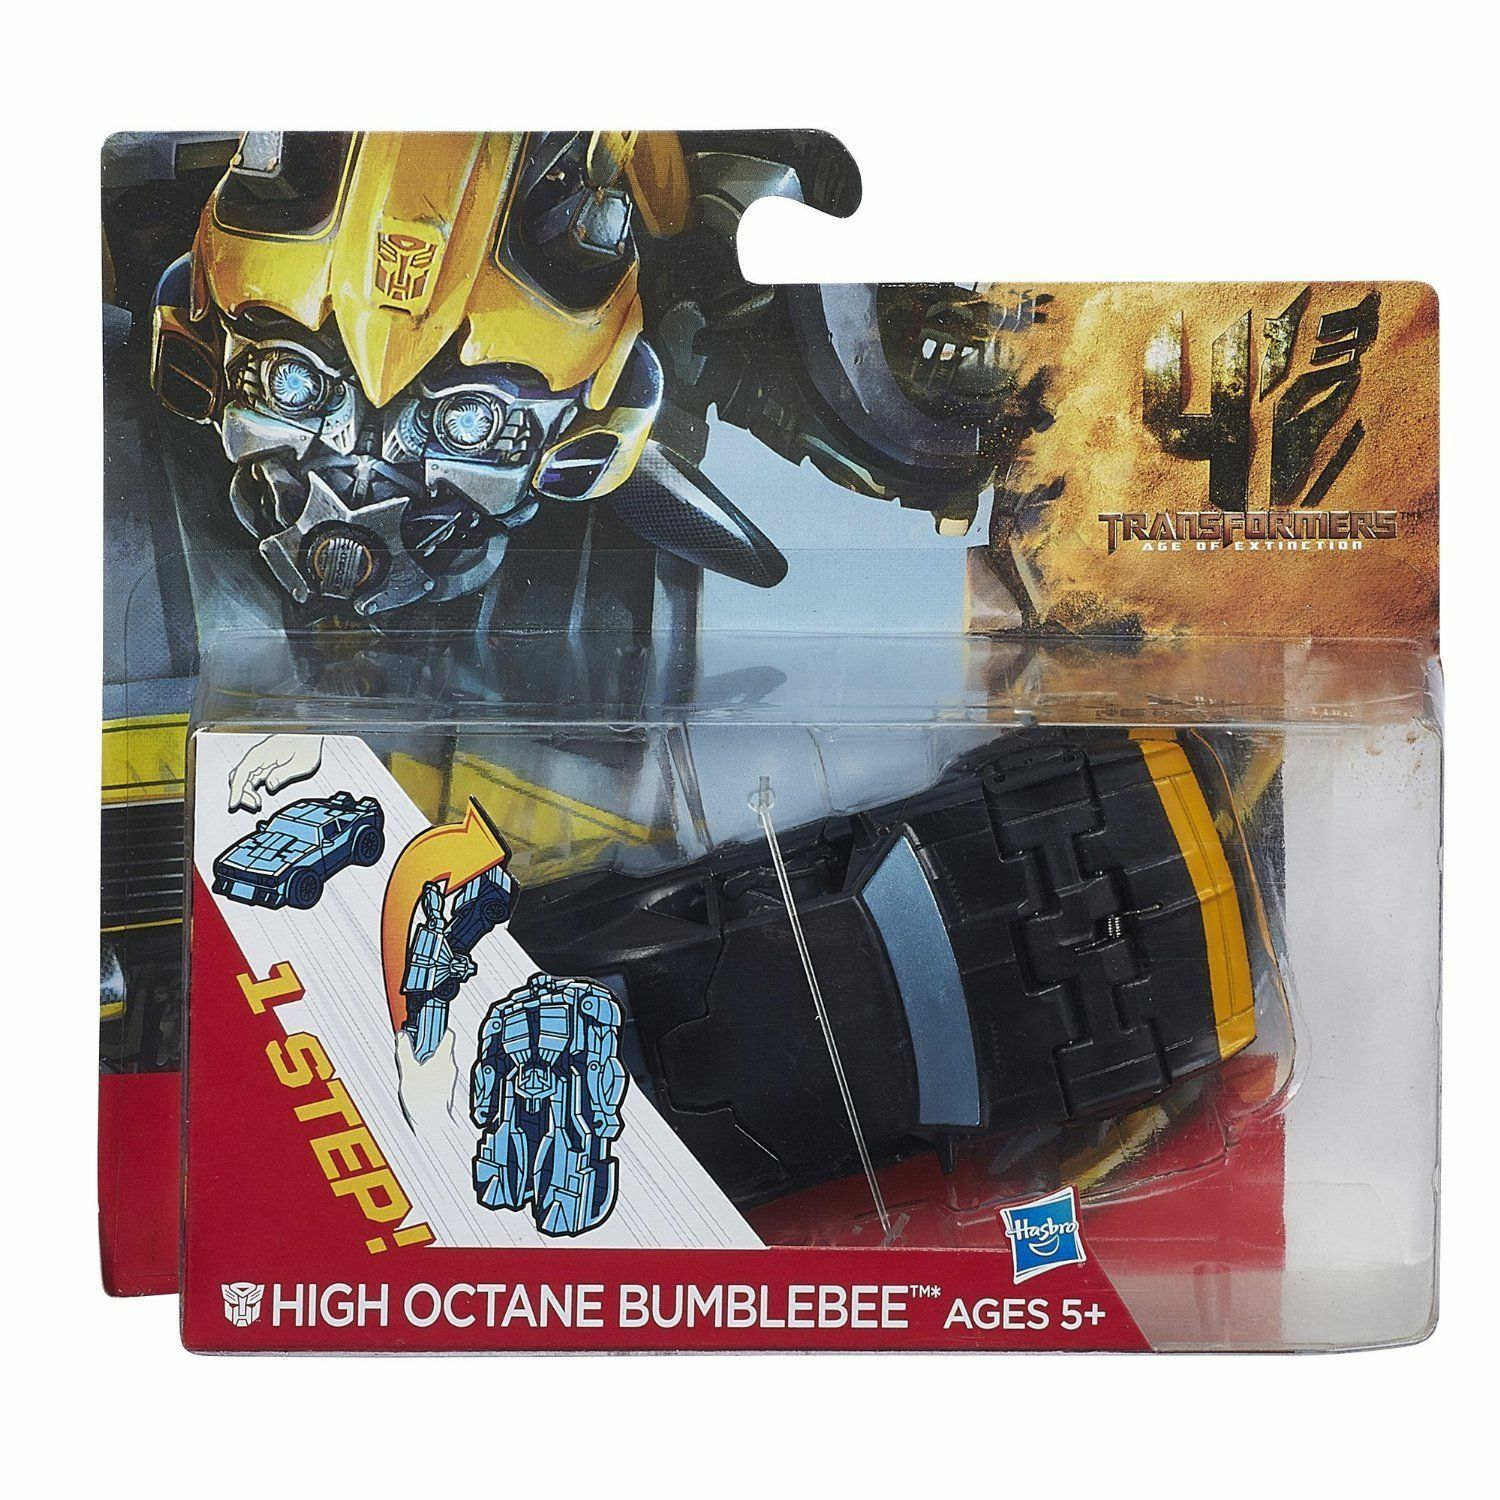 NEW TRANSFORMERS AGE OF EXTINCTION ONE-STEP CHANGER HIGH OCTANE BUMBLEBEE CAMARO